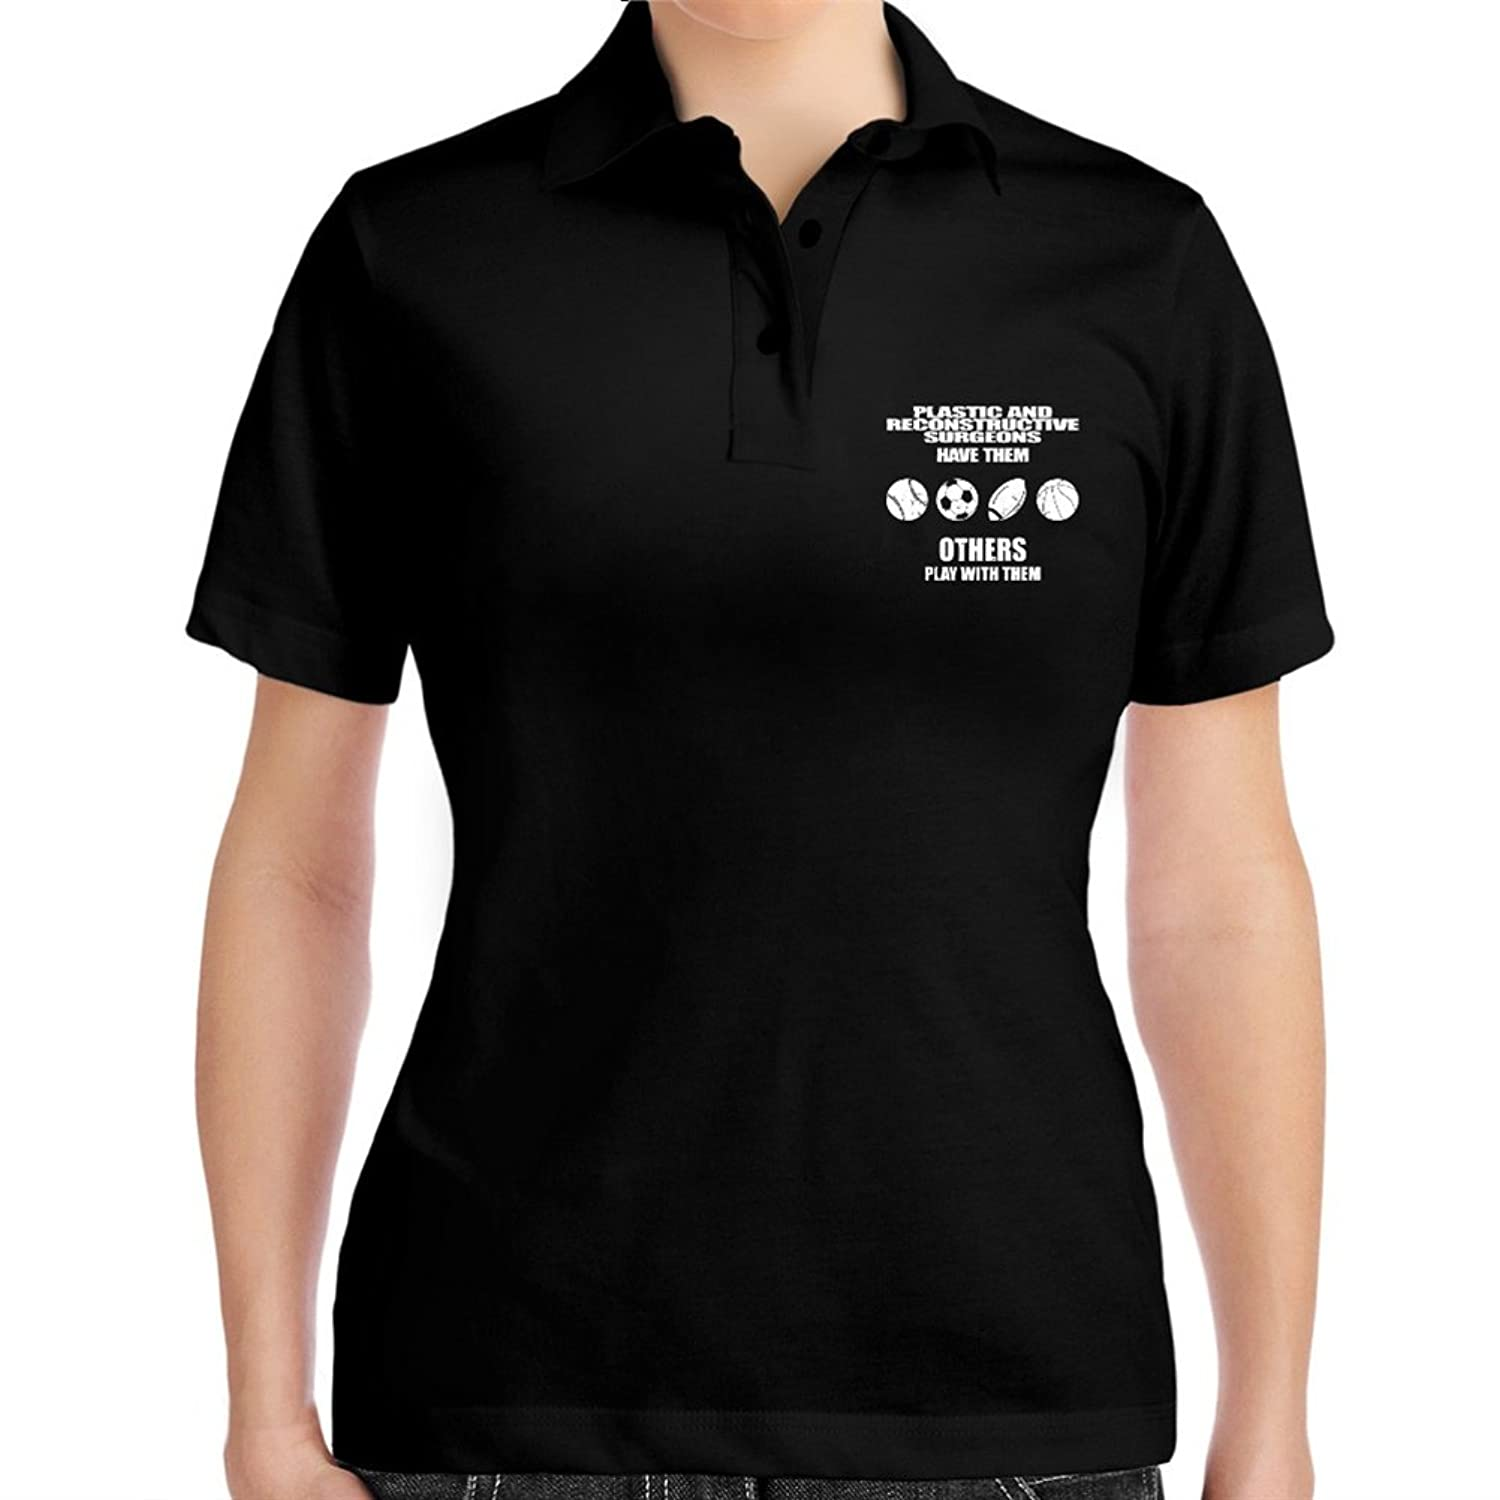 Plastic And Reconstructive Surgeon have them others play with them Women Polo Shirt